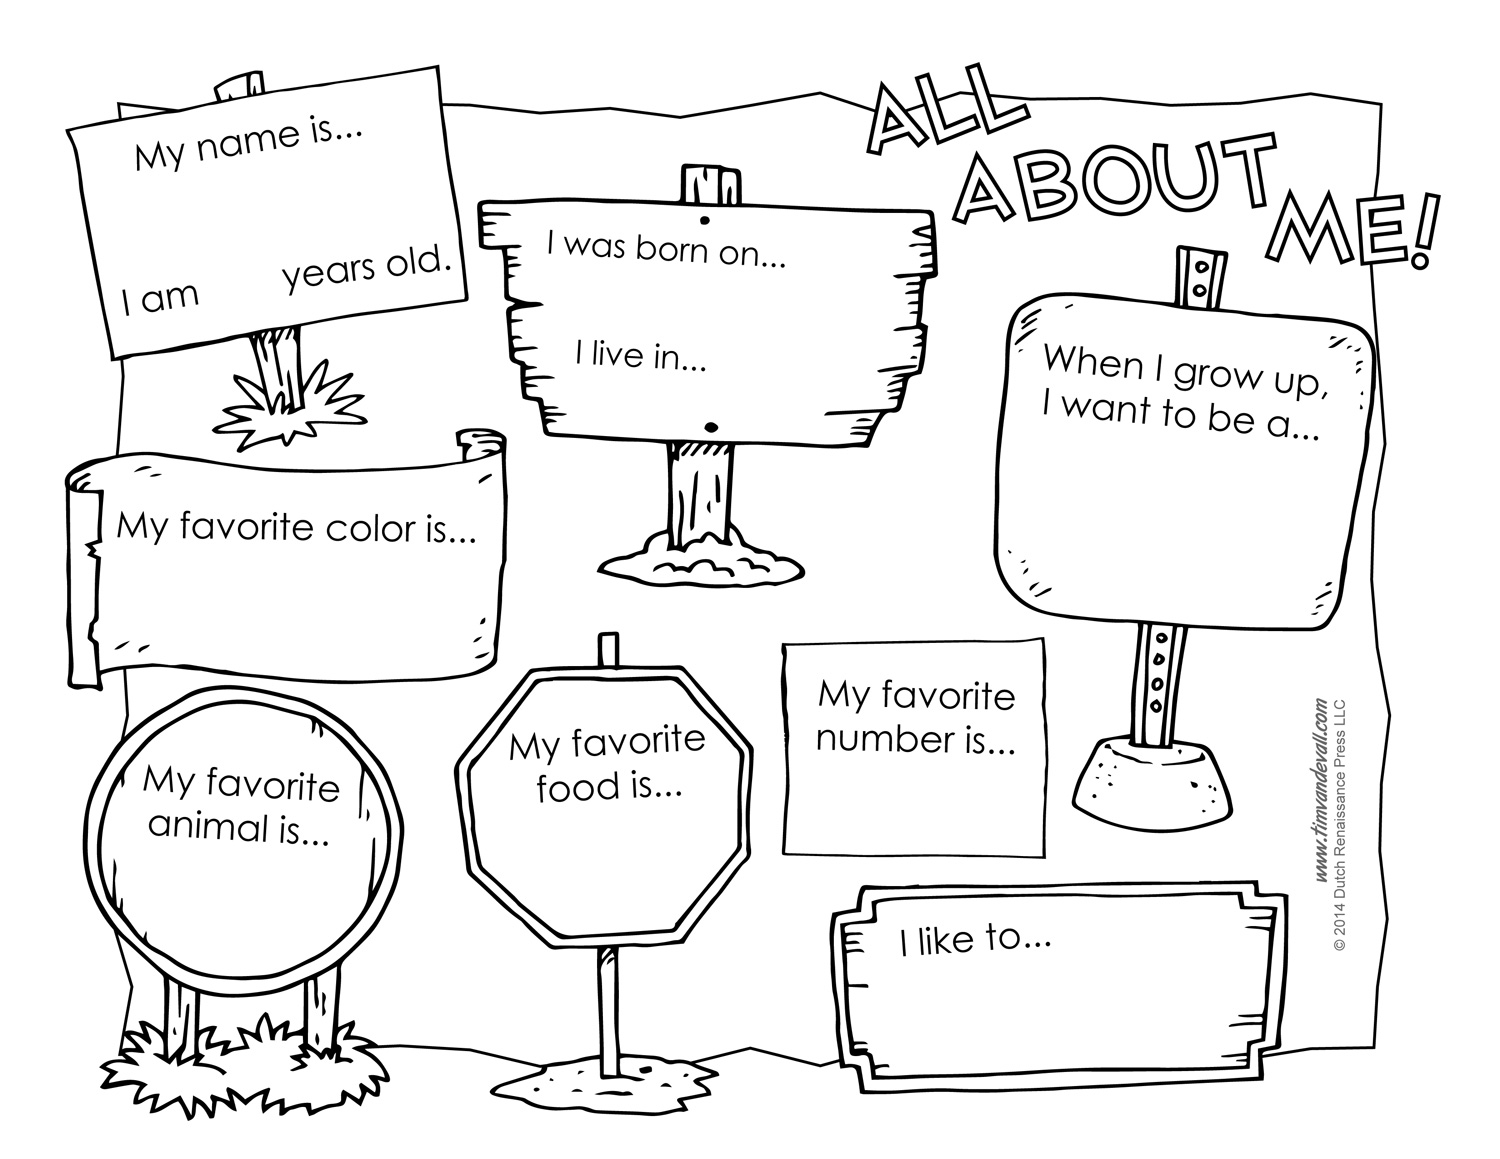 All About Me Worksheet Free  Free Teacher Worksheets Printables